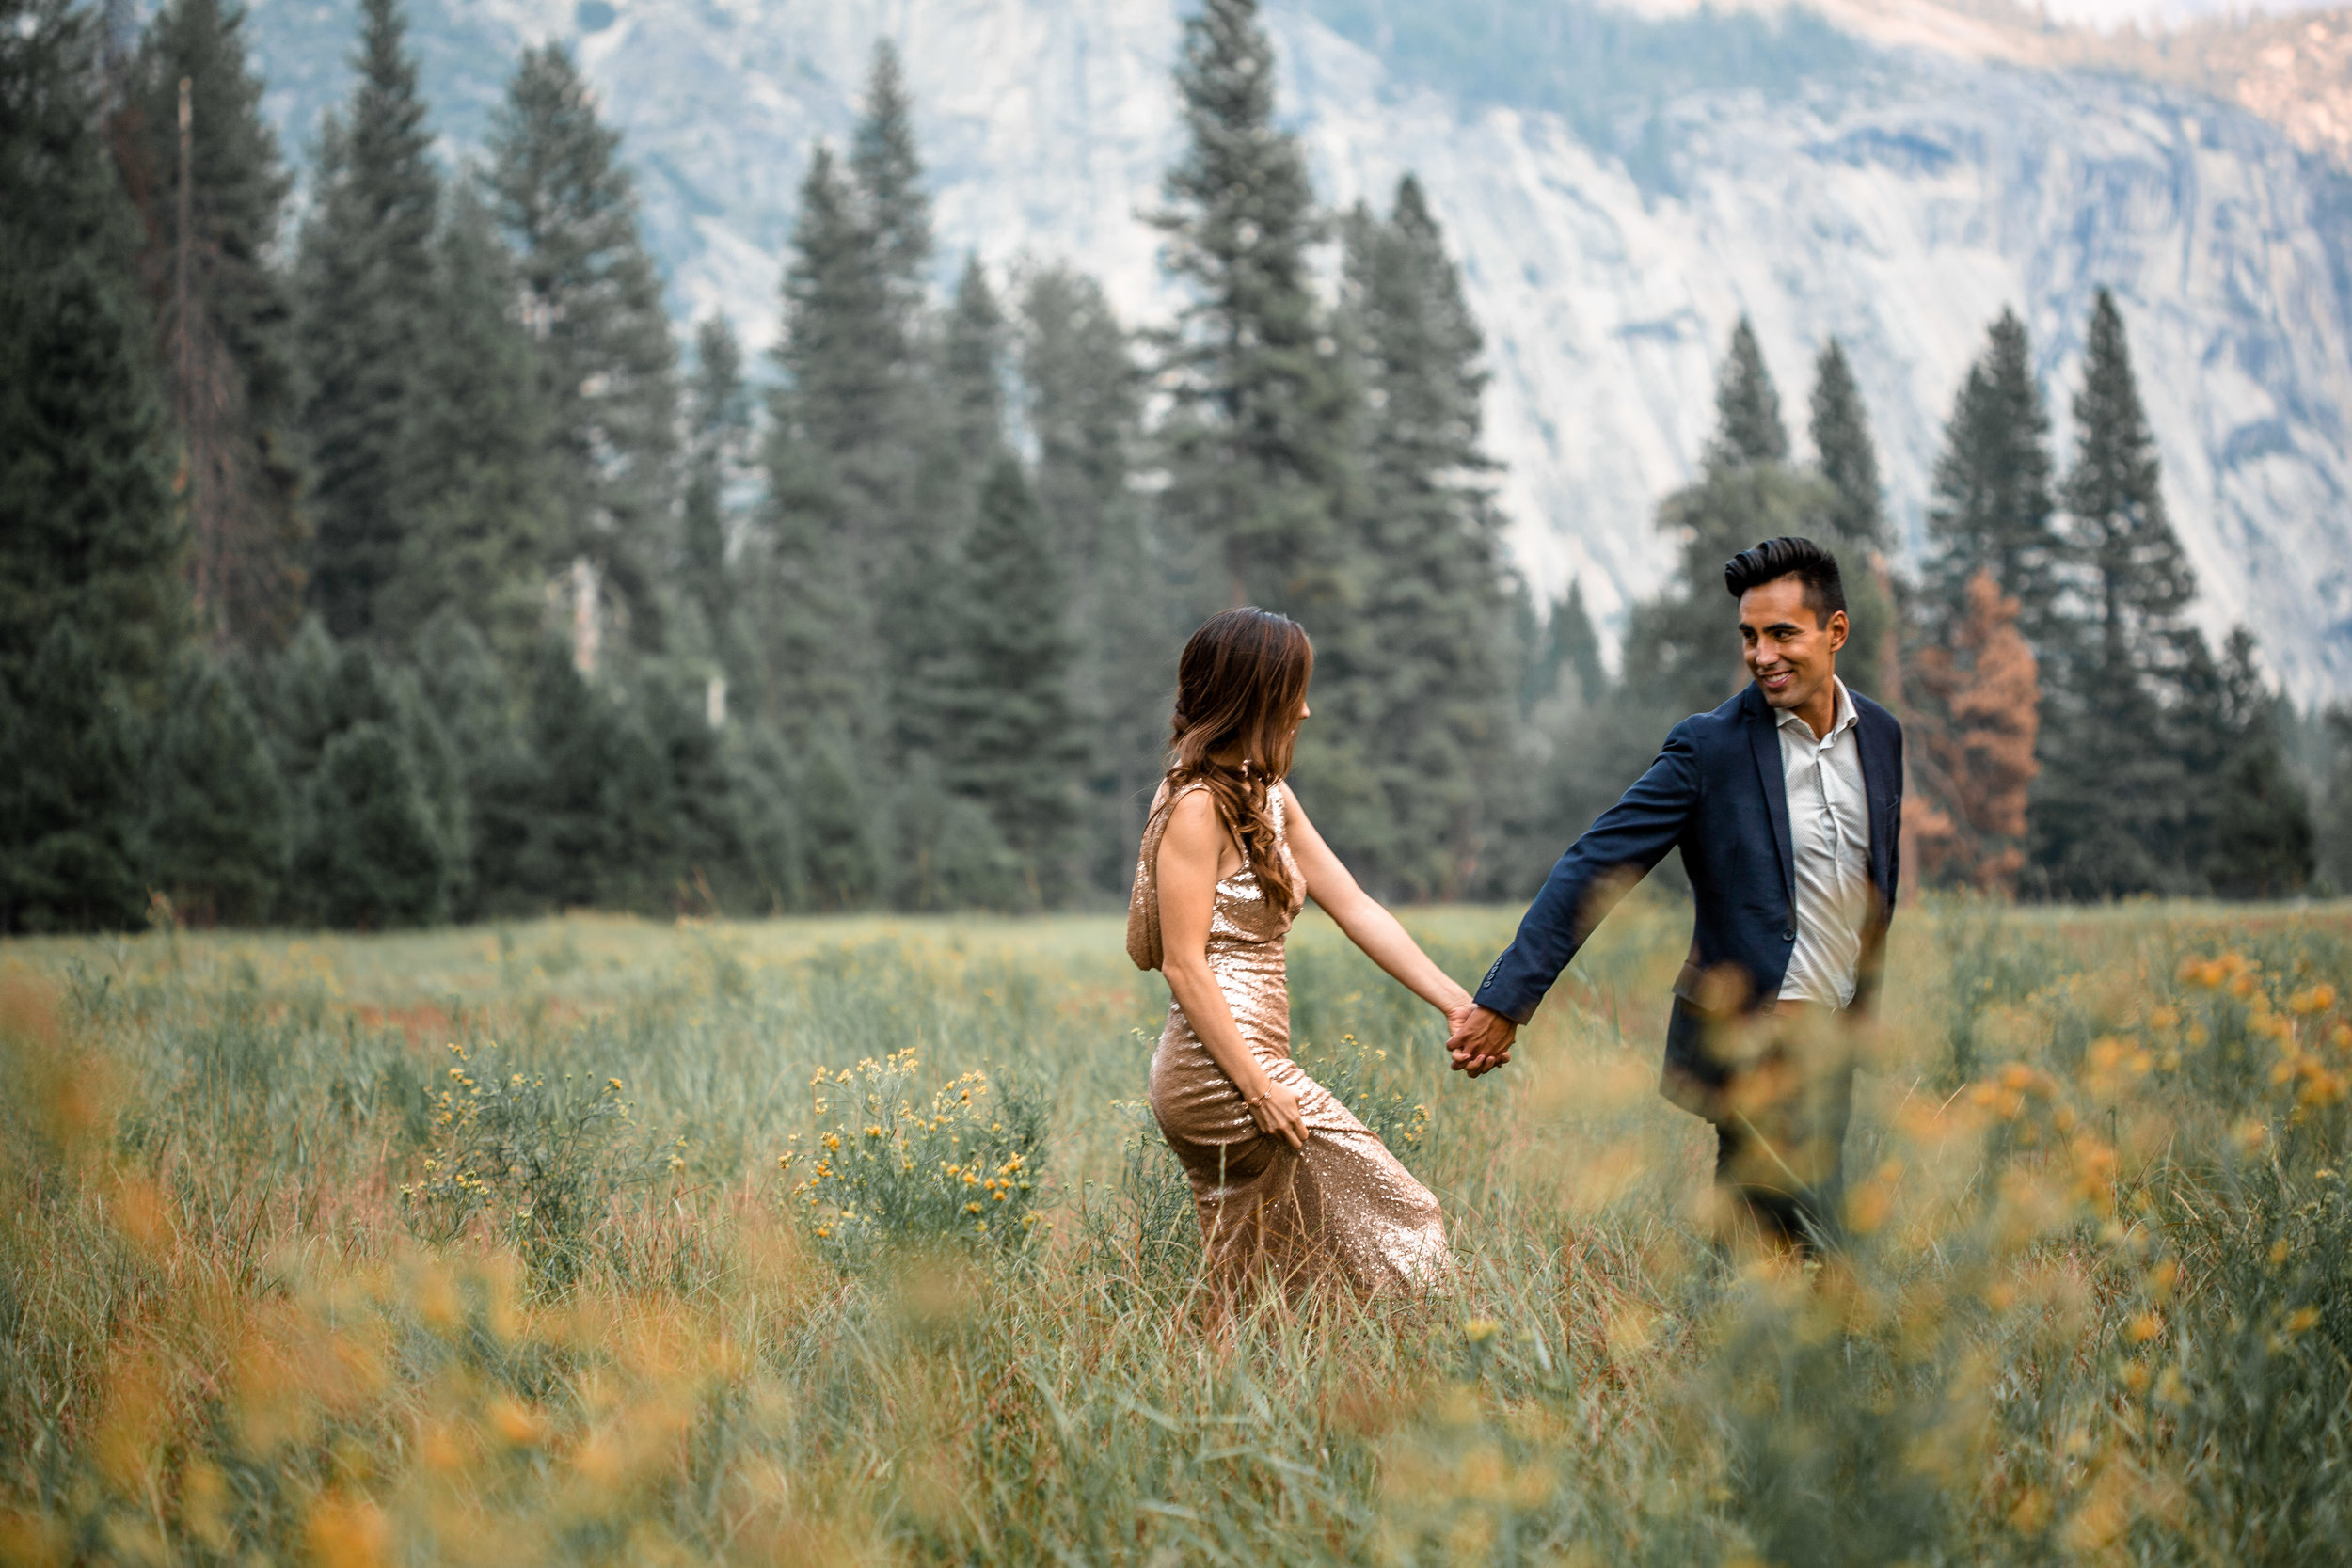 nicole-daacke-photography-yosemite-national-park-adventurous-engagement-session-half-dome-engagement-session-anniversary-photographer-yosemite-elopement-photographer-yosemite-intimate-wedding-photography-10.jpg